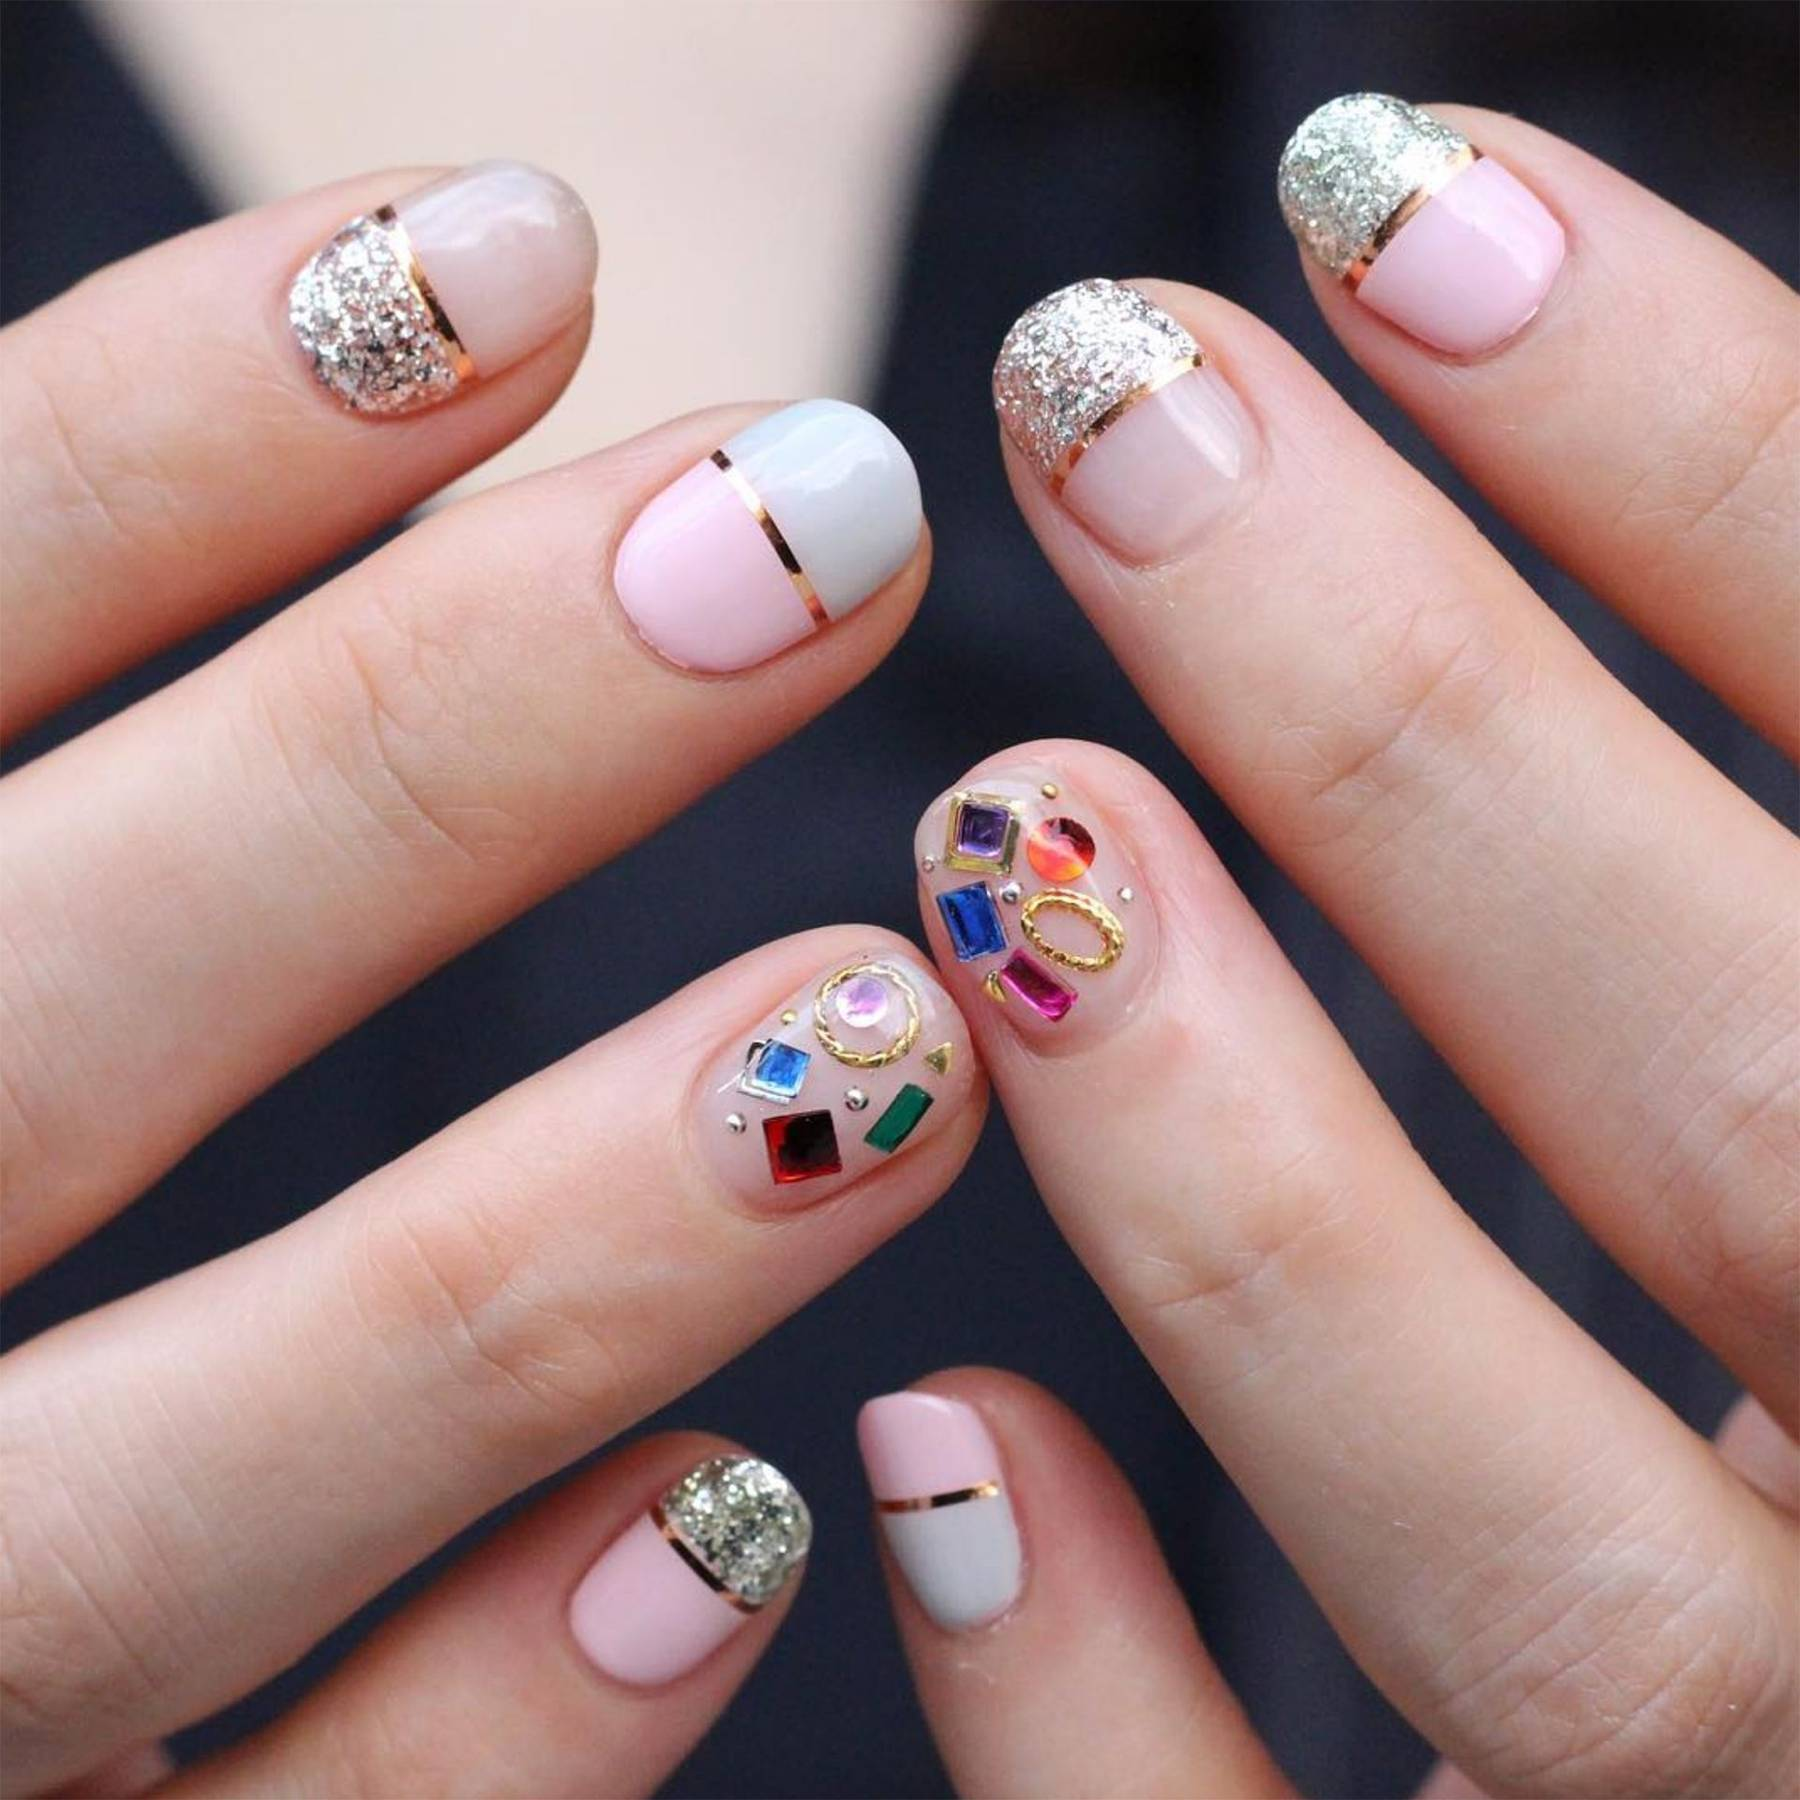 Korean nail art nail designs pictures from instagram glamour uk prinsesfo Gallery